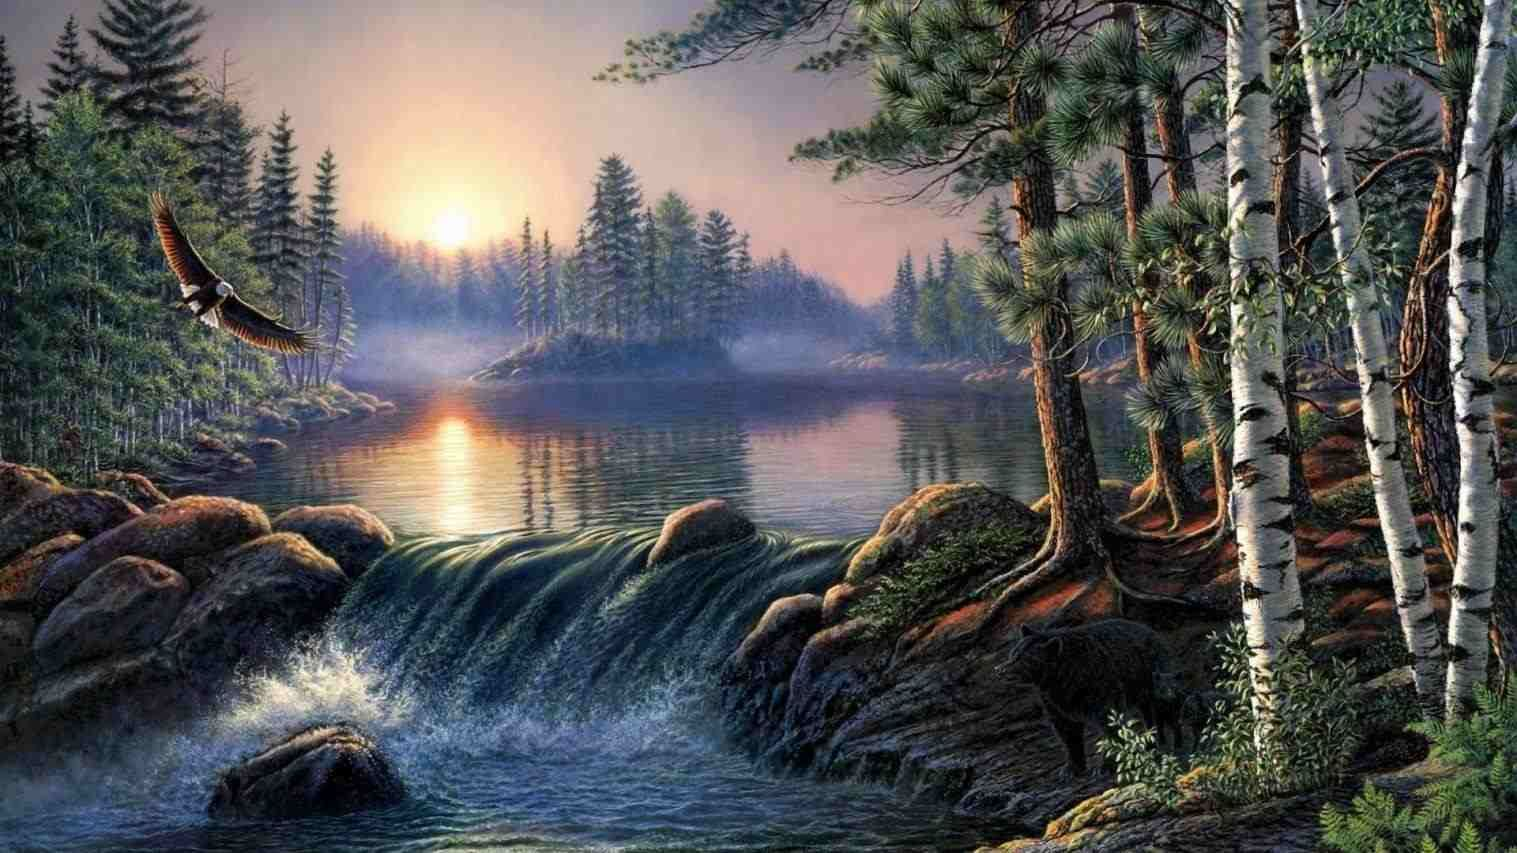 Nature Painting Wallpaper Hd Lungs Nature Wallpaper Nature Background Wallpaper Hd Green Nature Pa Waterfall Paintings Nature Paintings Landscape Wallpaper